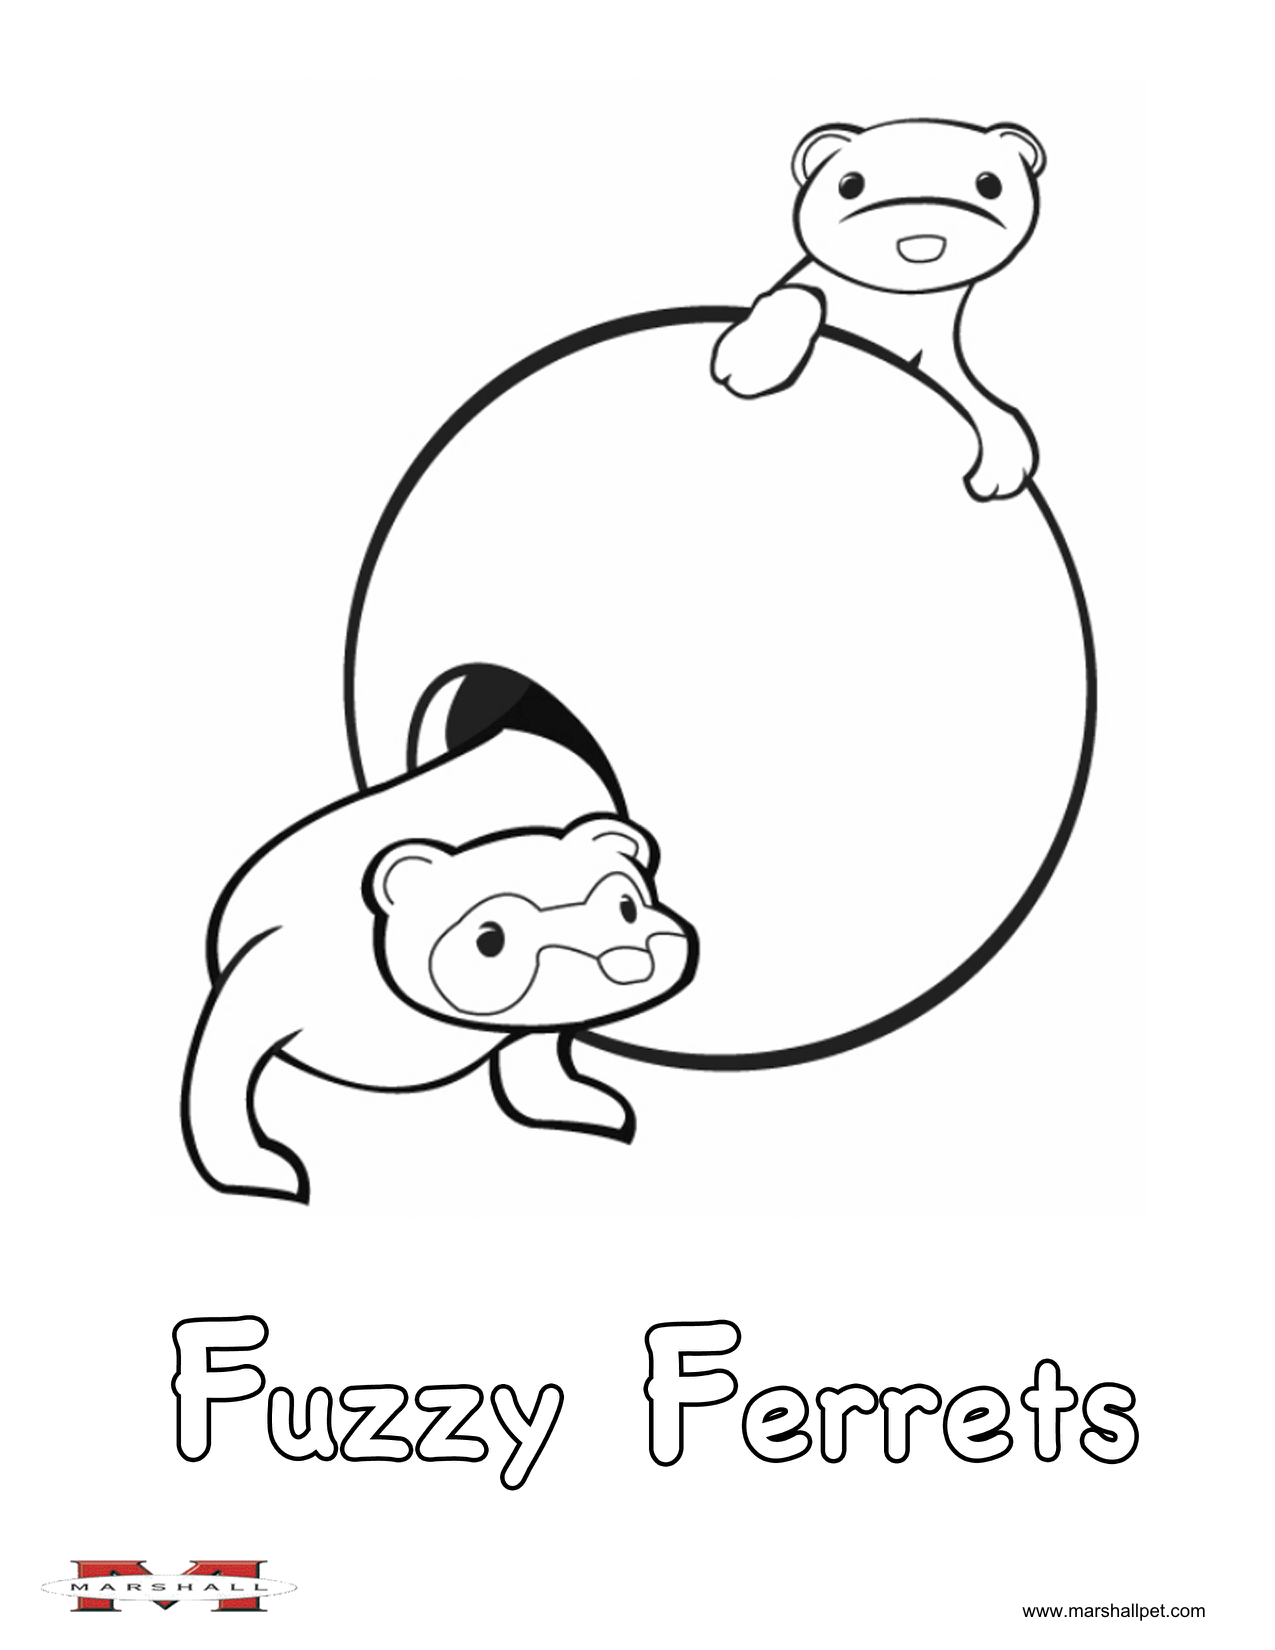 Ferrets Coloring Pages Coloring Pages For Kids Alphabet Activities